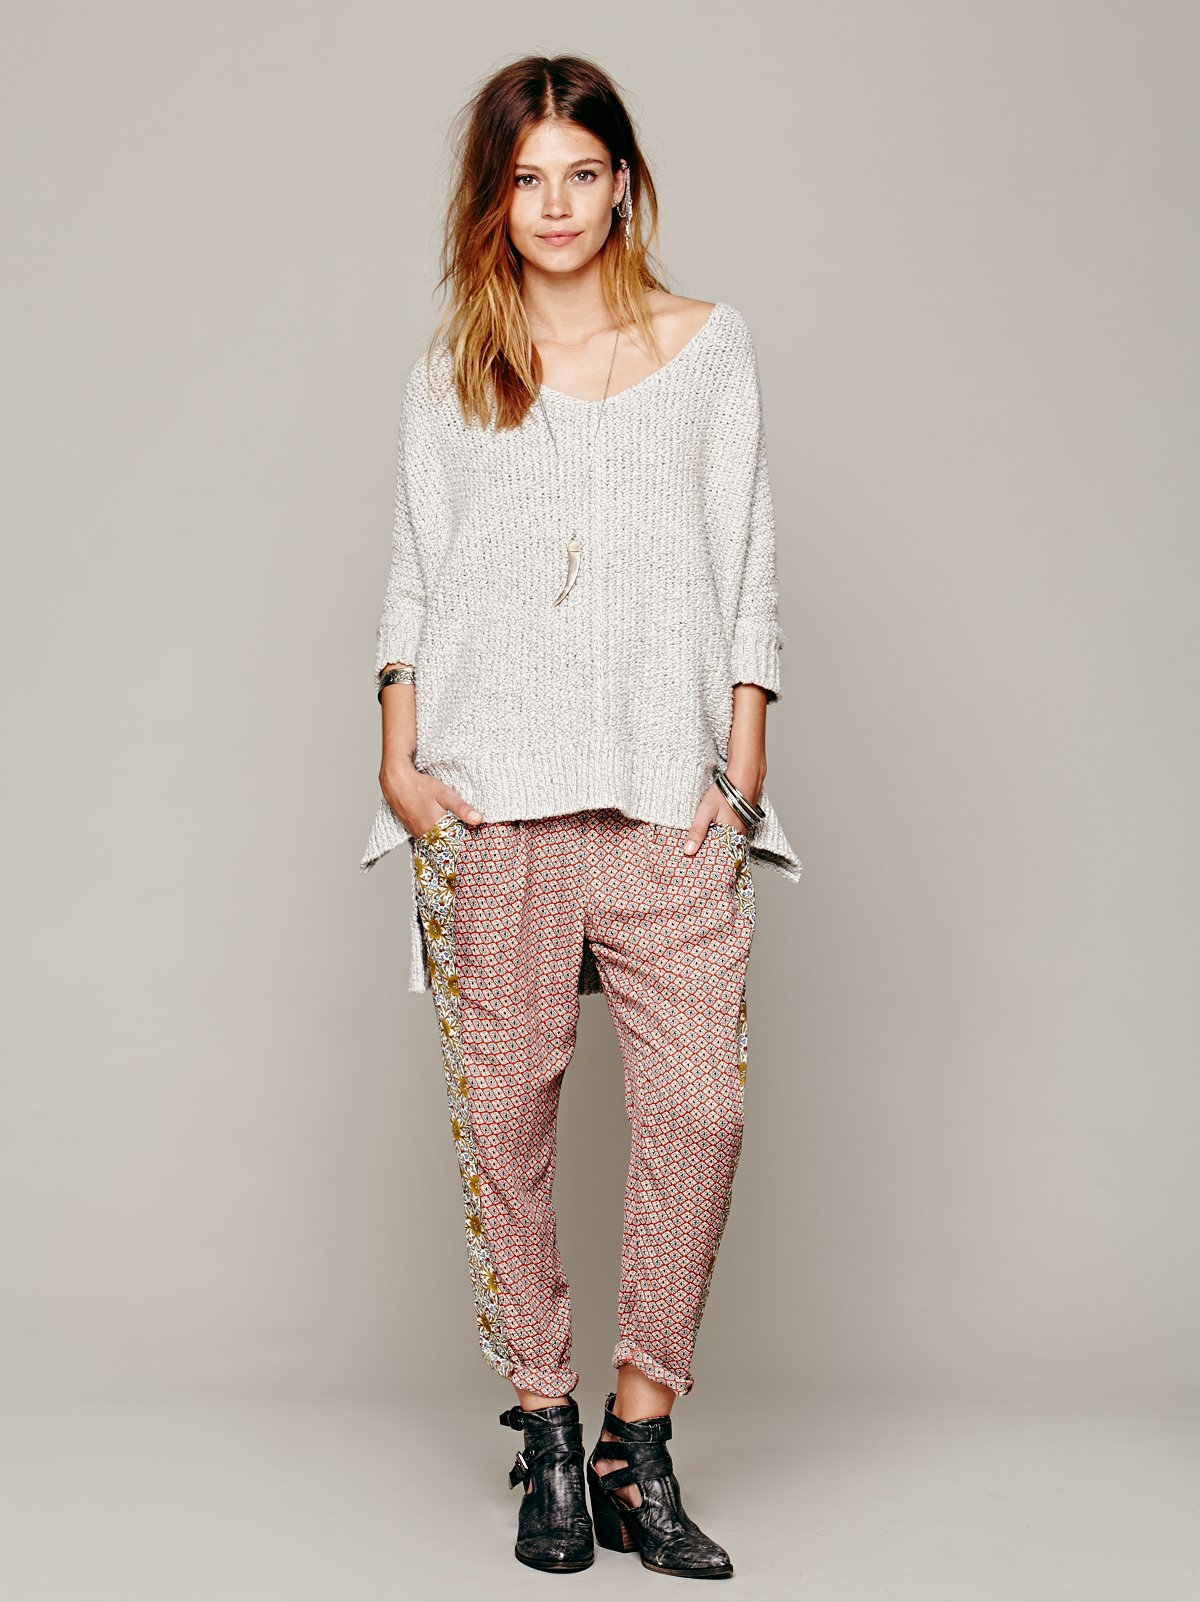 Mixed Print Easy Pleat Pants